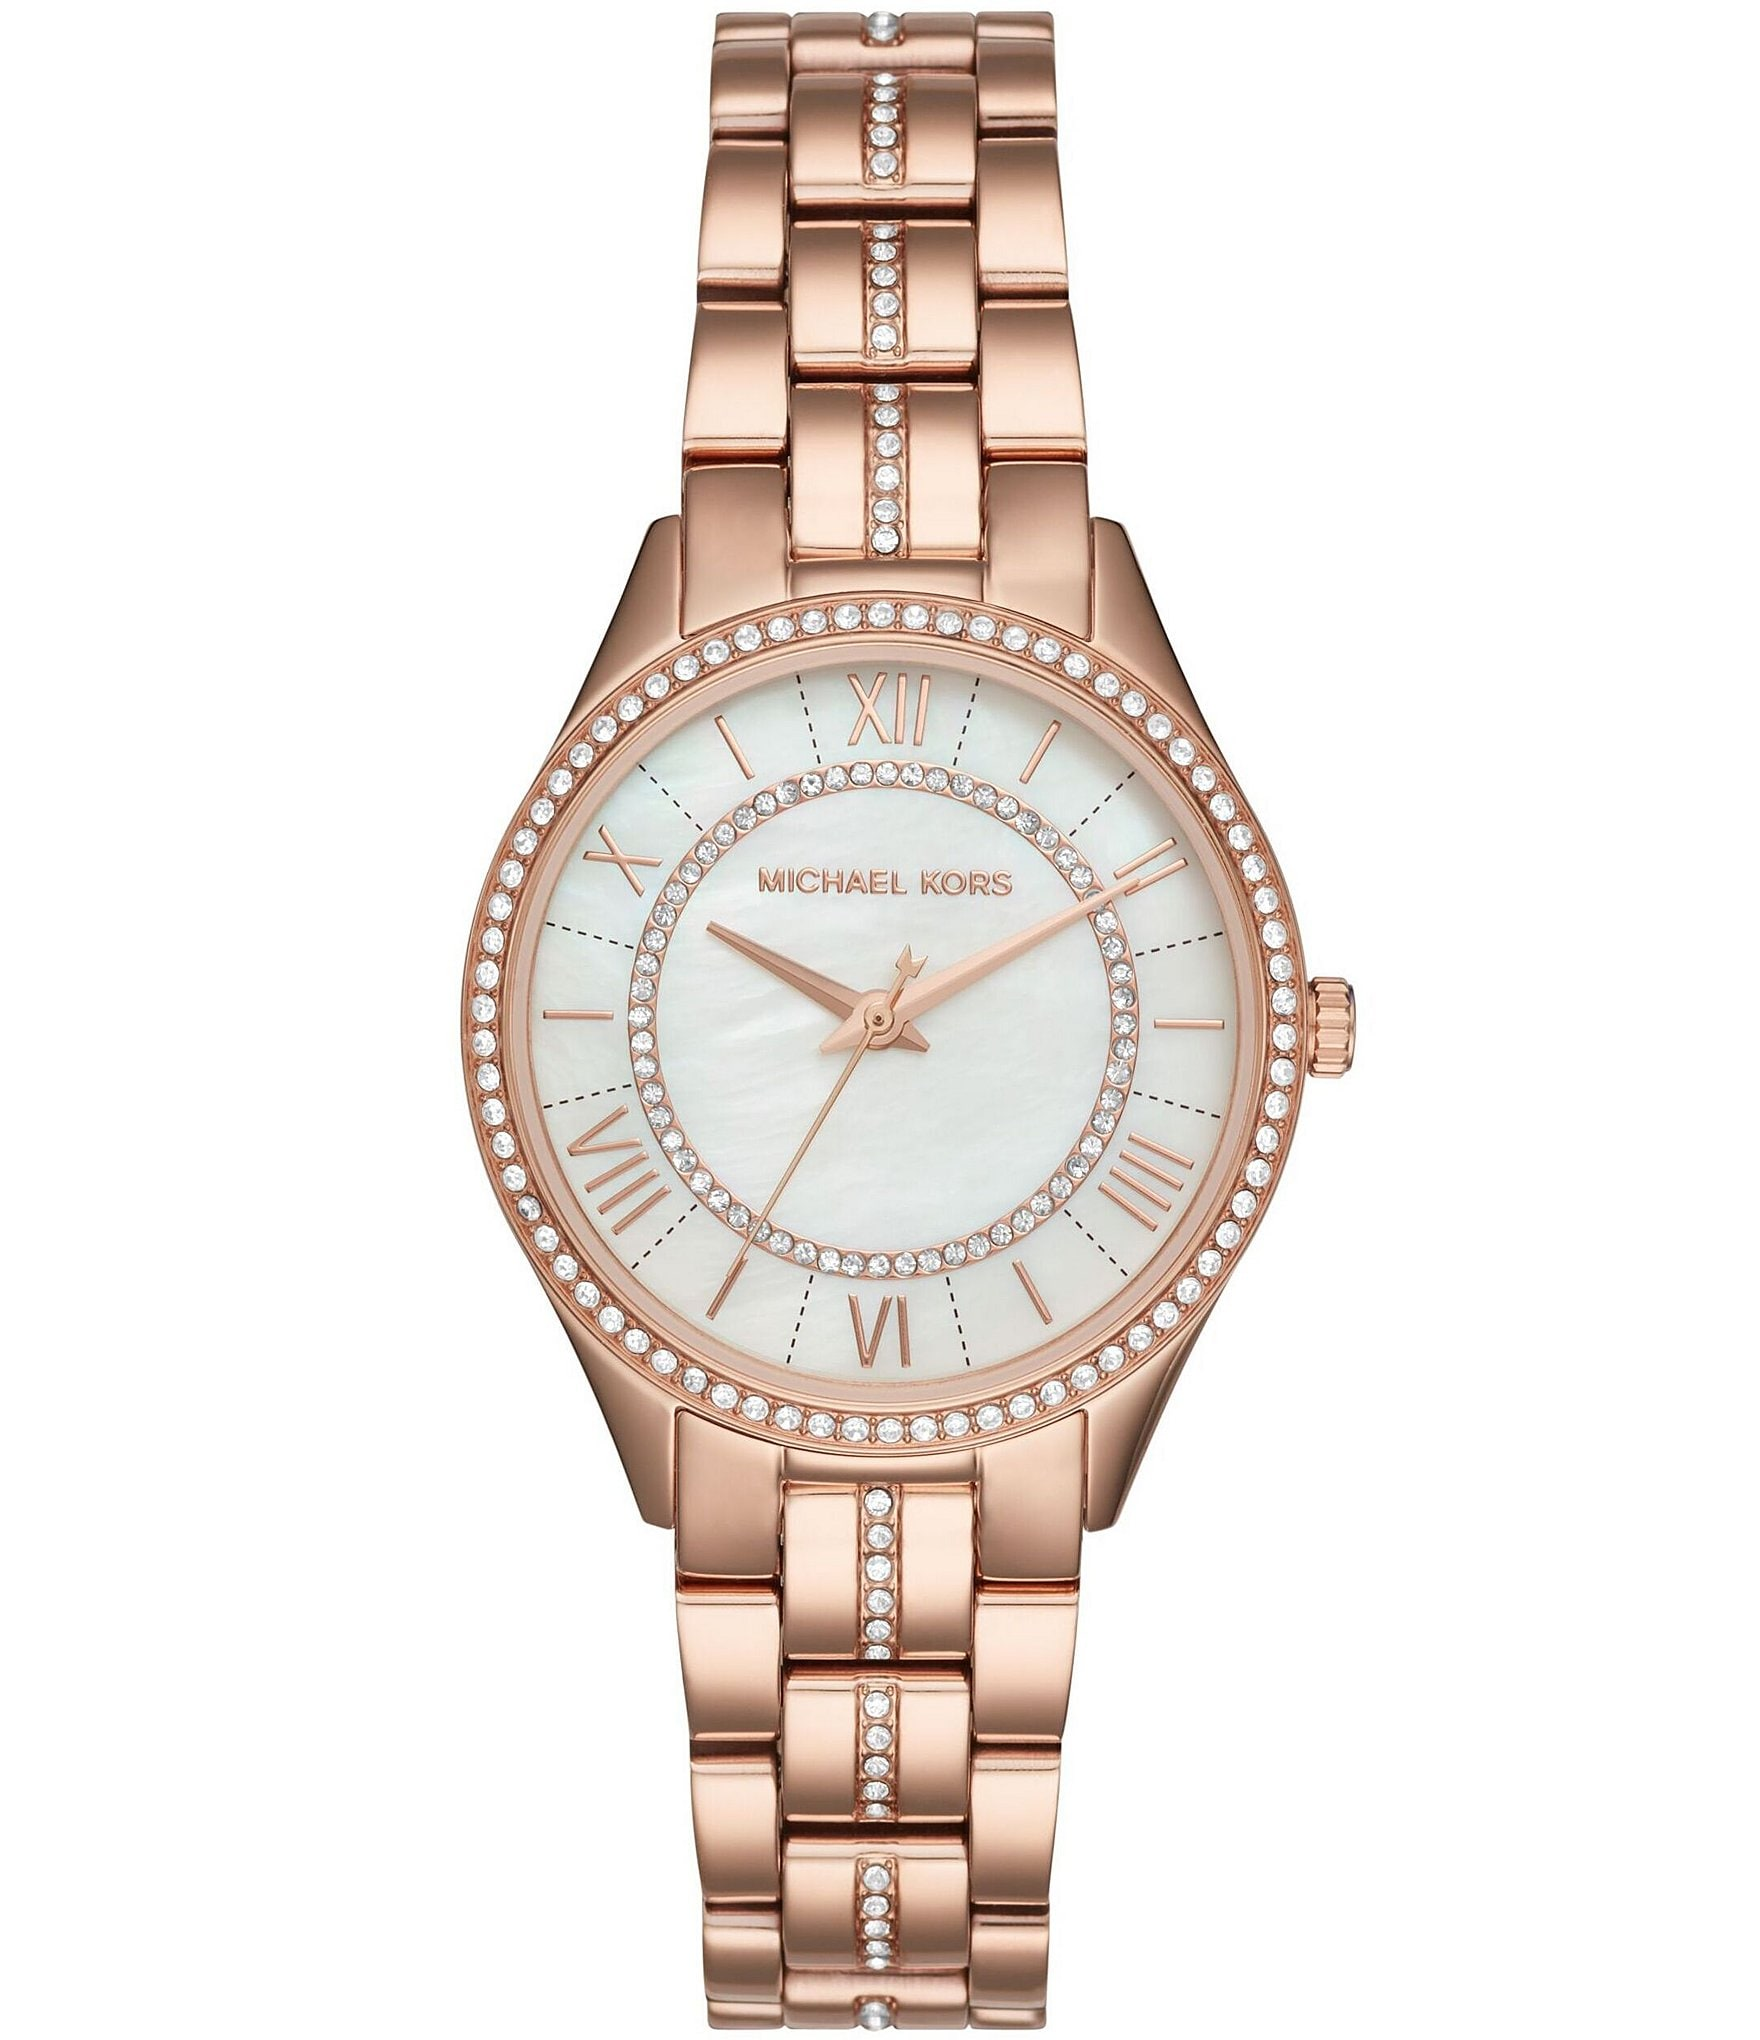 8a835011cec5 Michael Kors Women s Rose Gold Watches